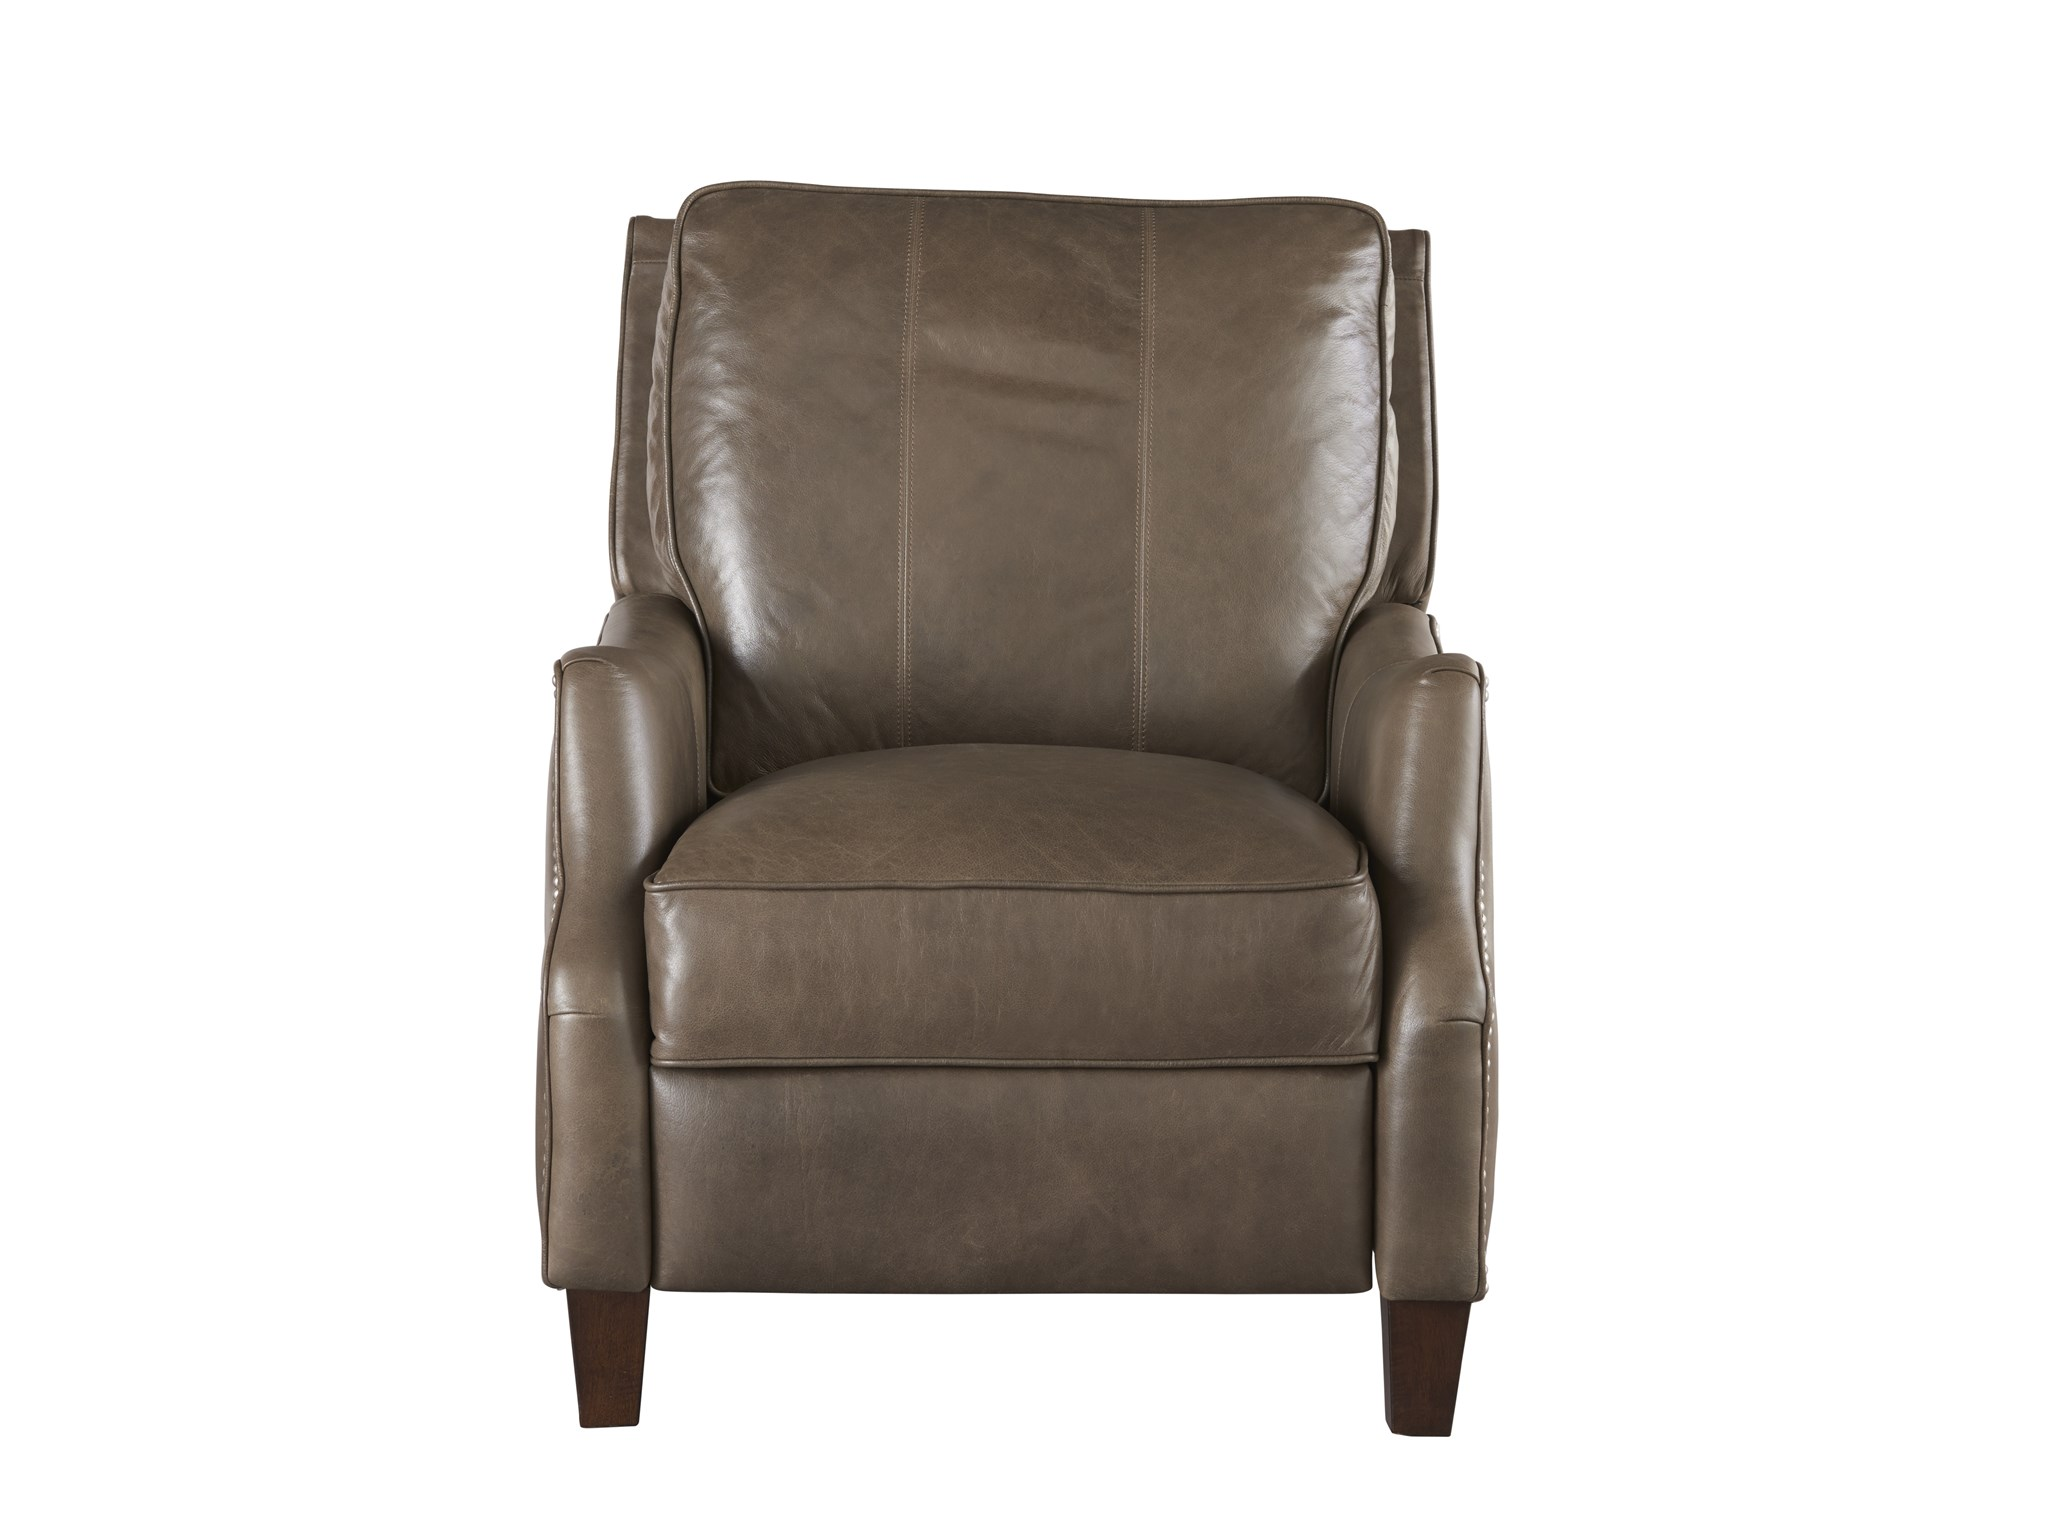 The Lewis Power Recliner